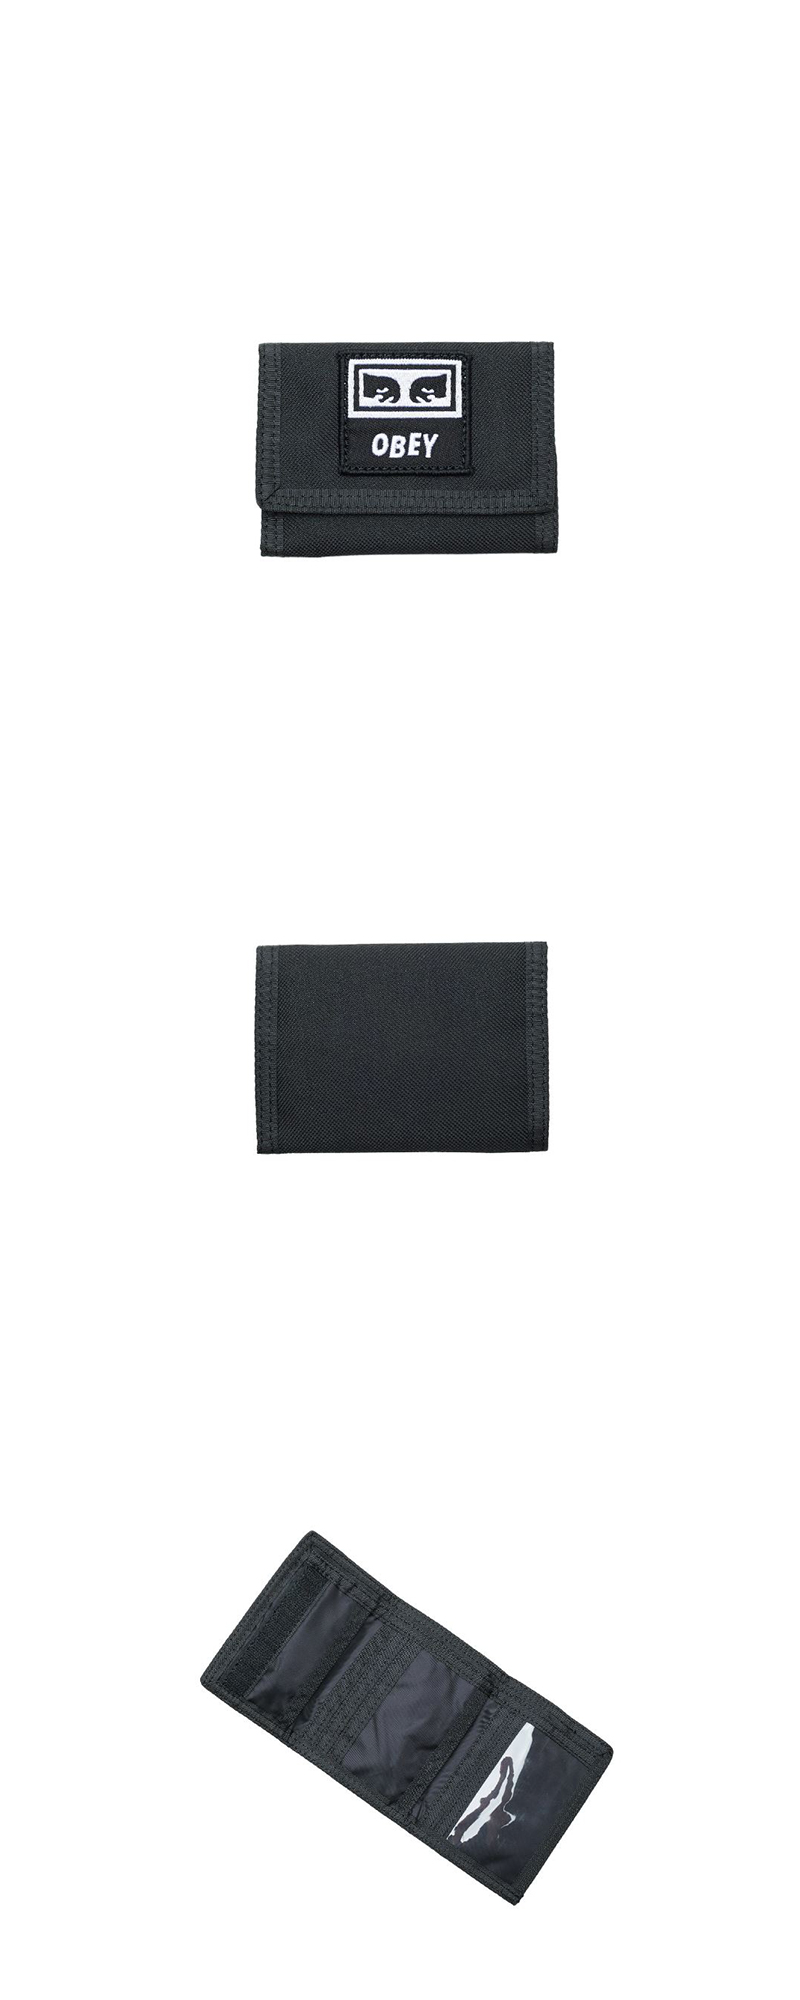 오베이 지갑 TAKEOVER TRI FOLD WALLET 100010122 BLACK